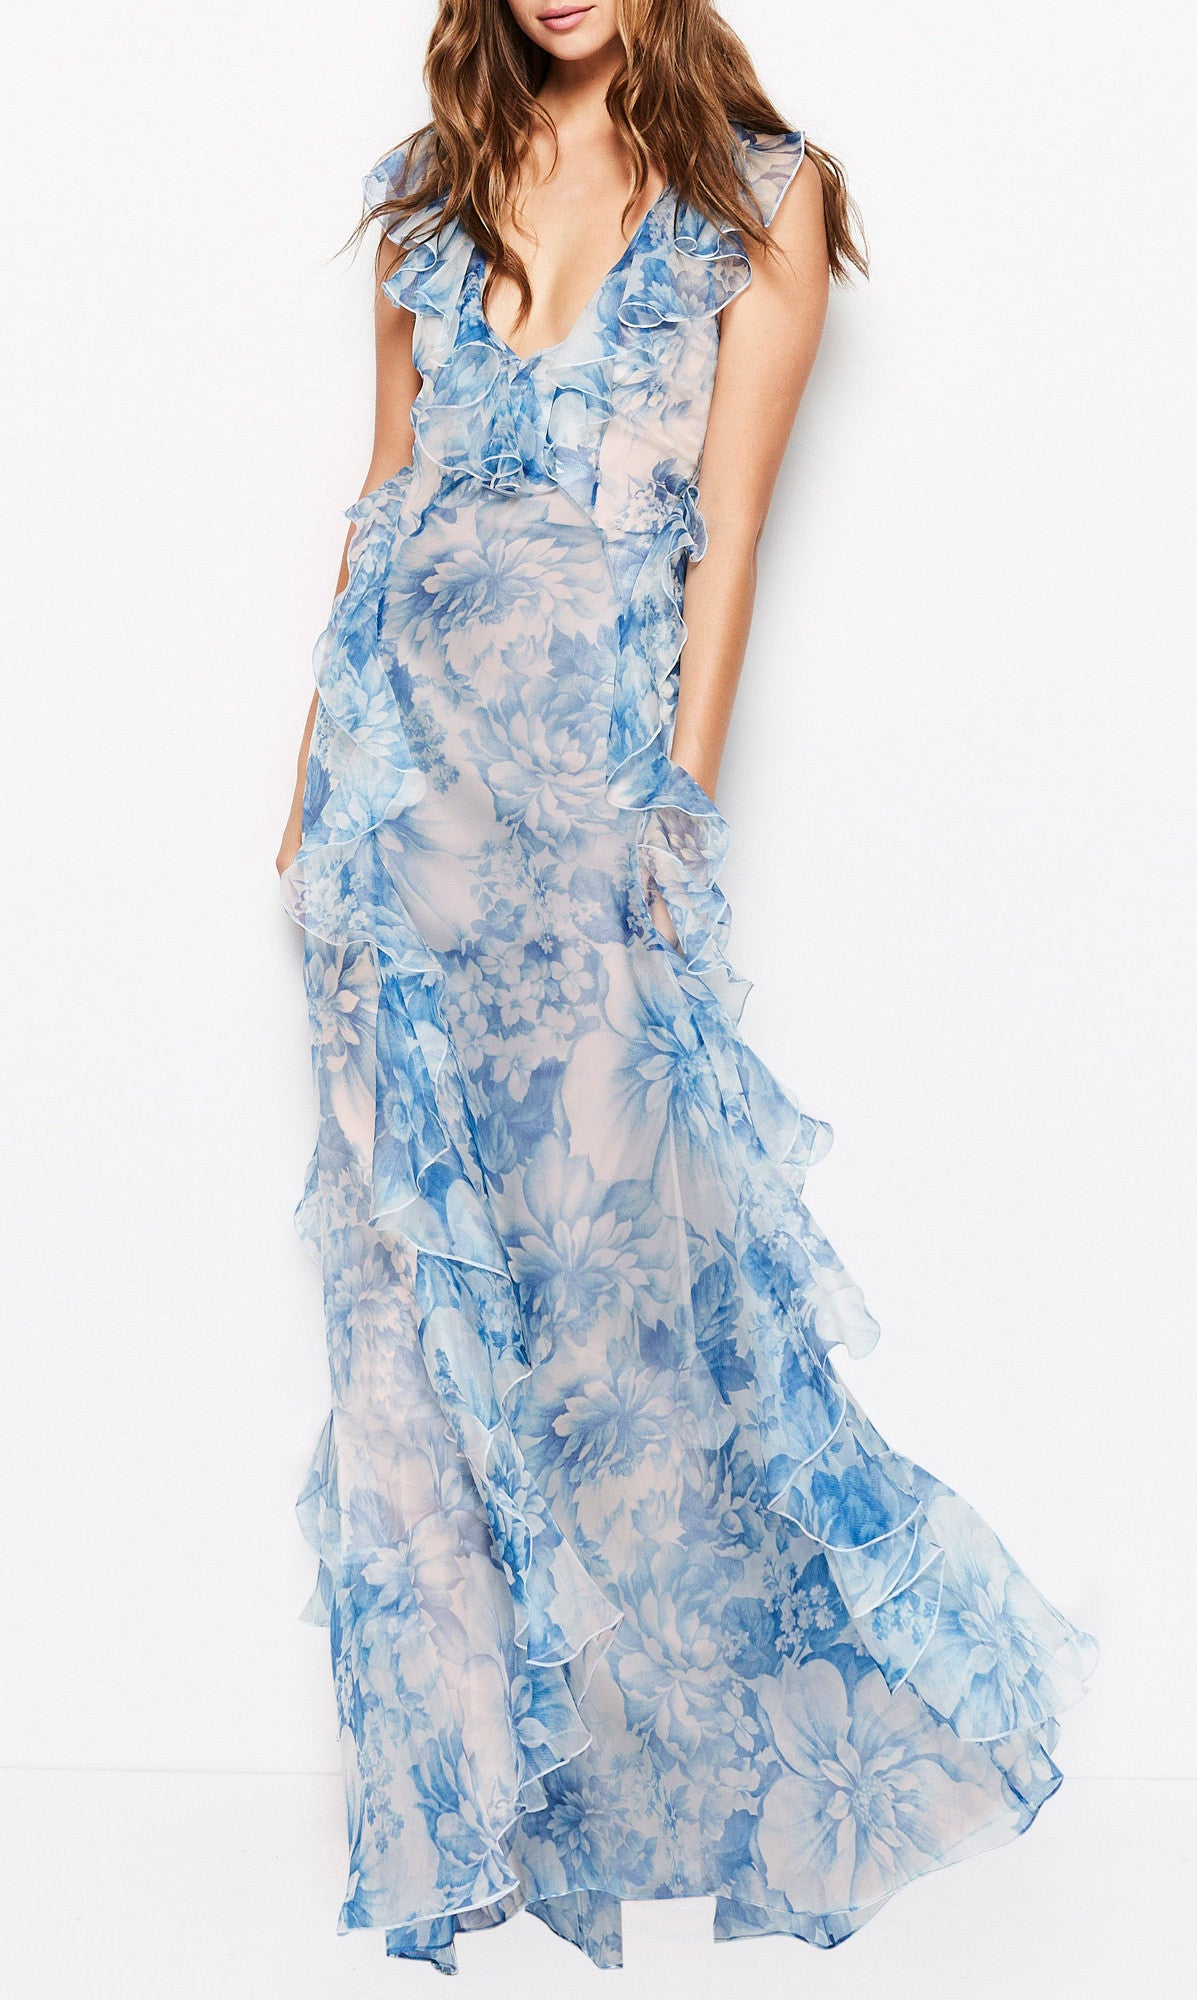 8fb312bc5b8 Alice Mccall Oh My Goodness Dress Ocean Blue Floral (Hire Only)